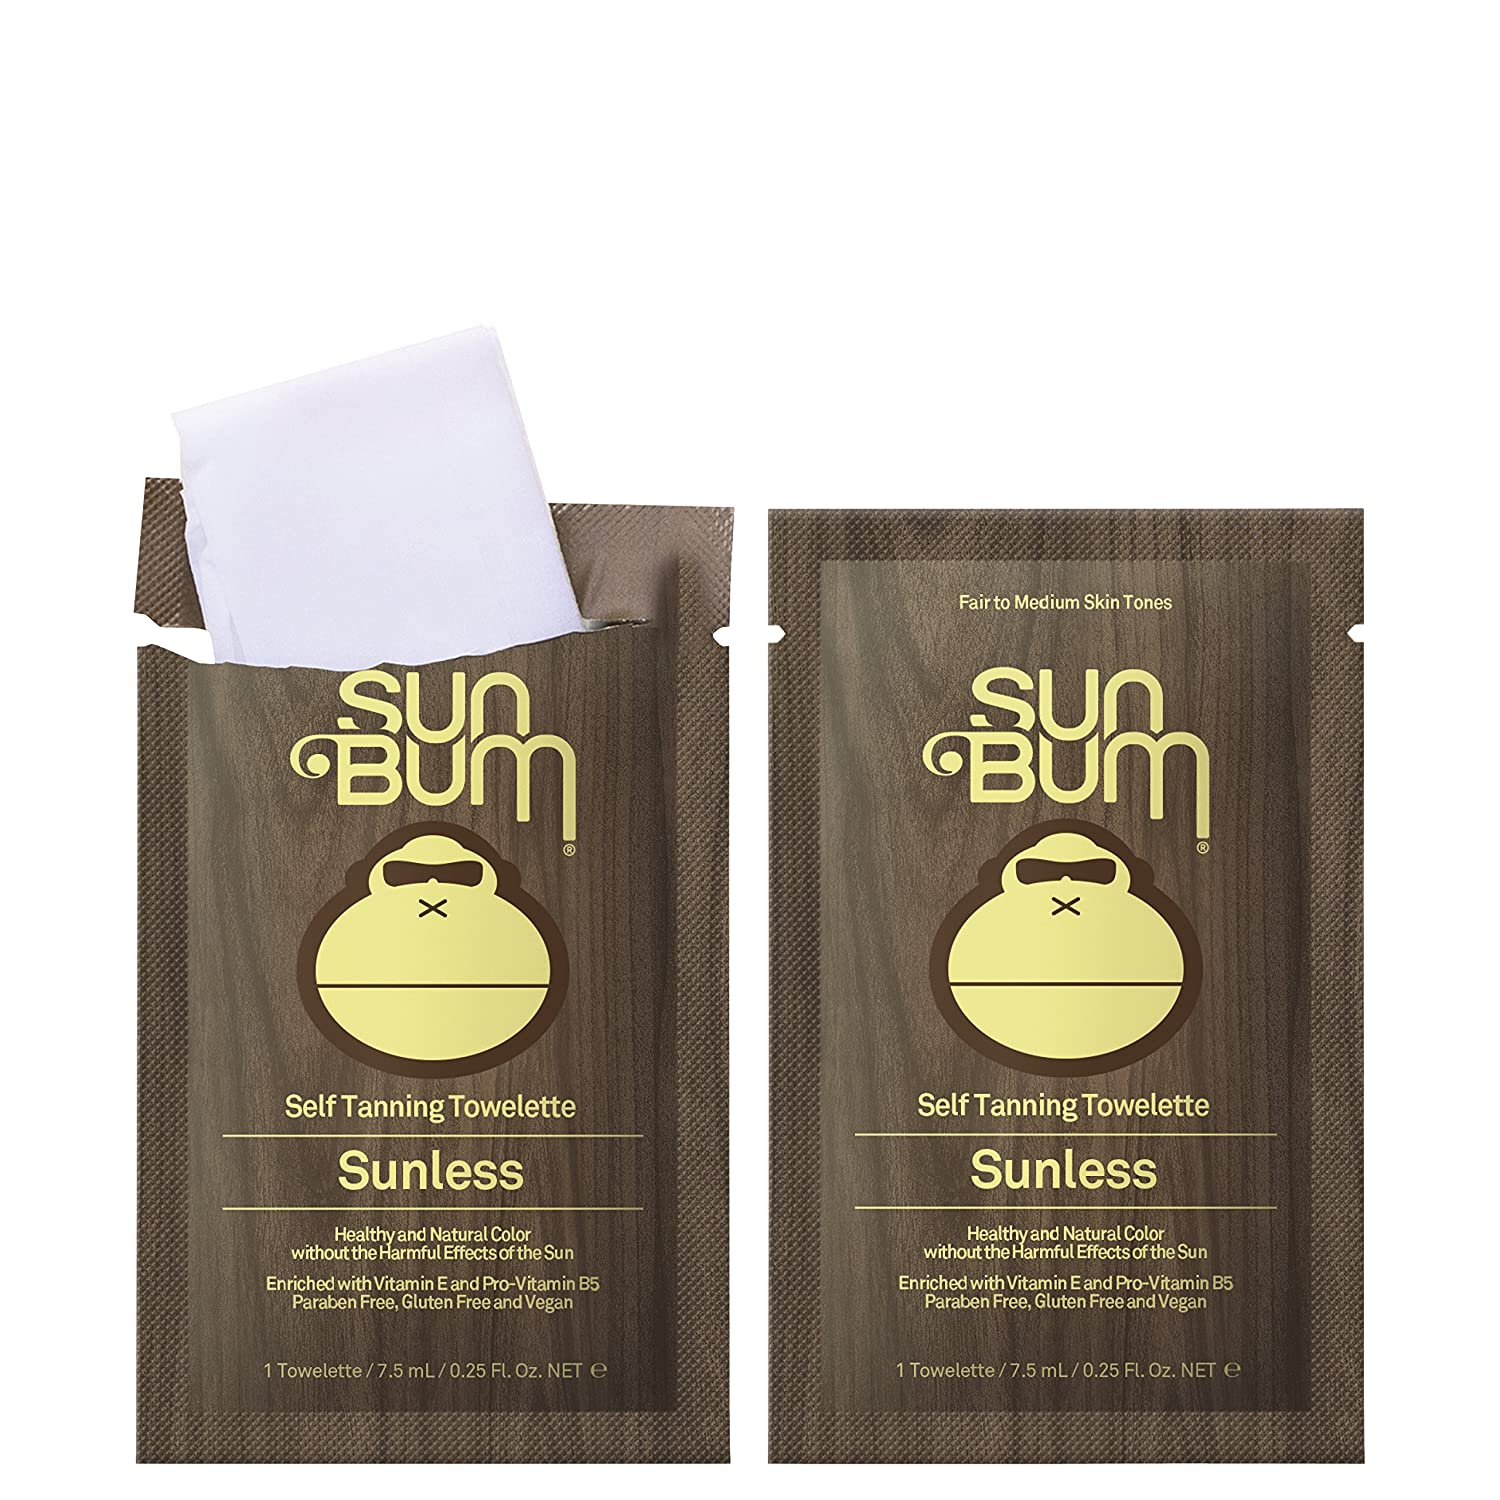 5 Sunless Tanning Towelettes for a Natural Glow